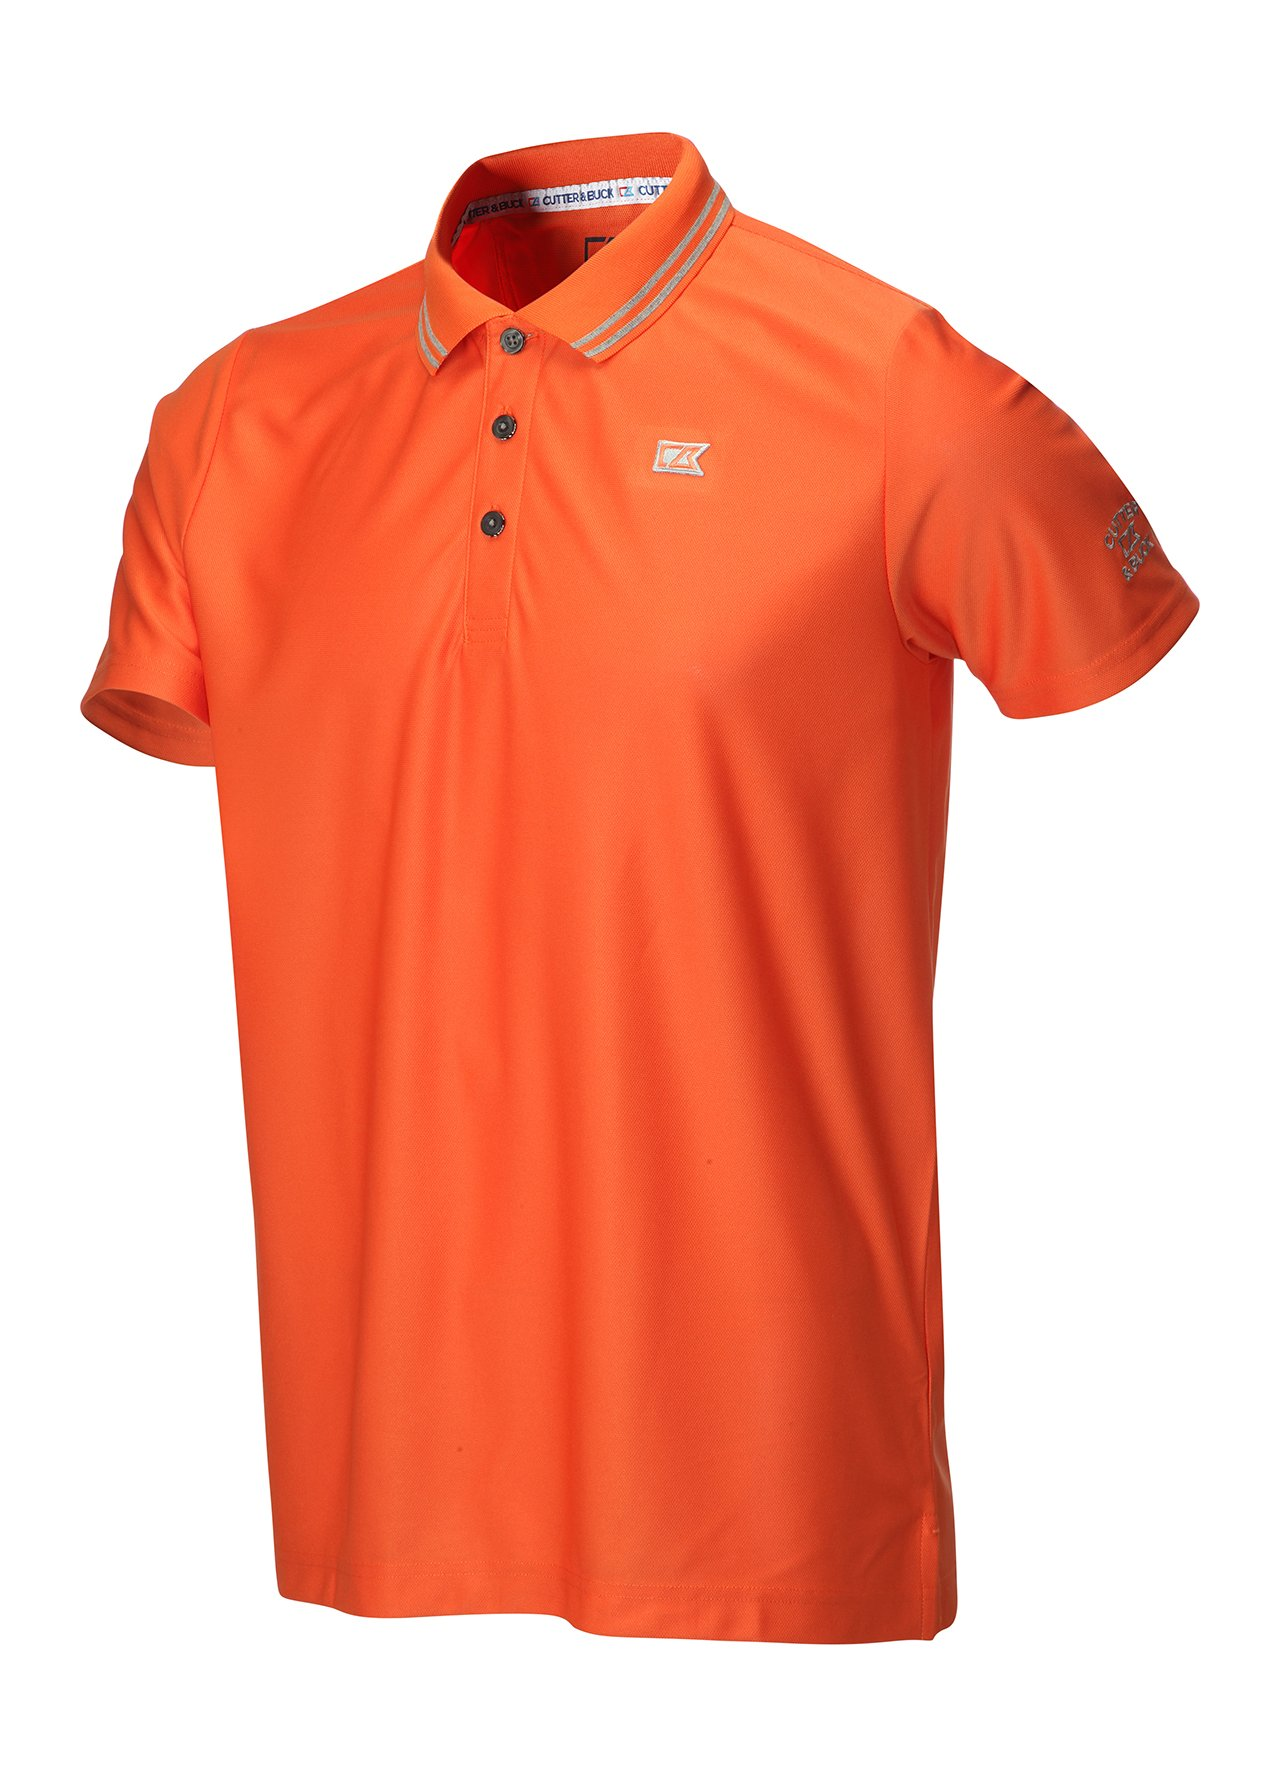 Golf clothing shirts orange cutter buck tipped for Cutter buck polo shirt size chart